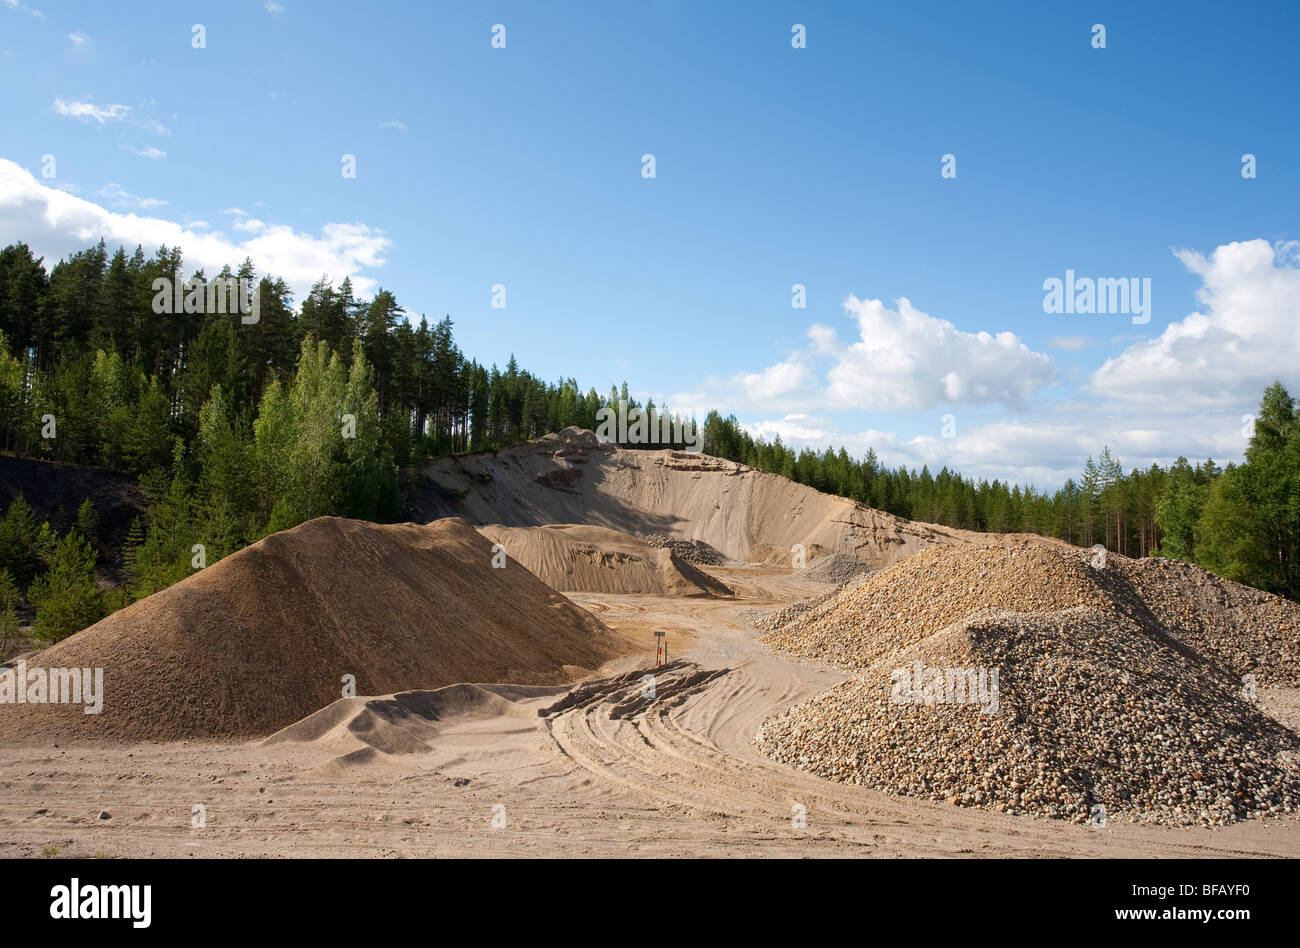 Wall of a sandpit in a sandy ridge , Finland - Stock Image